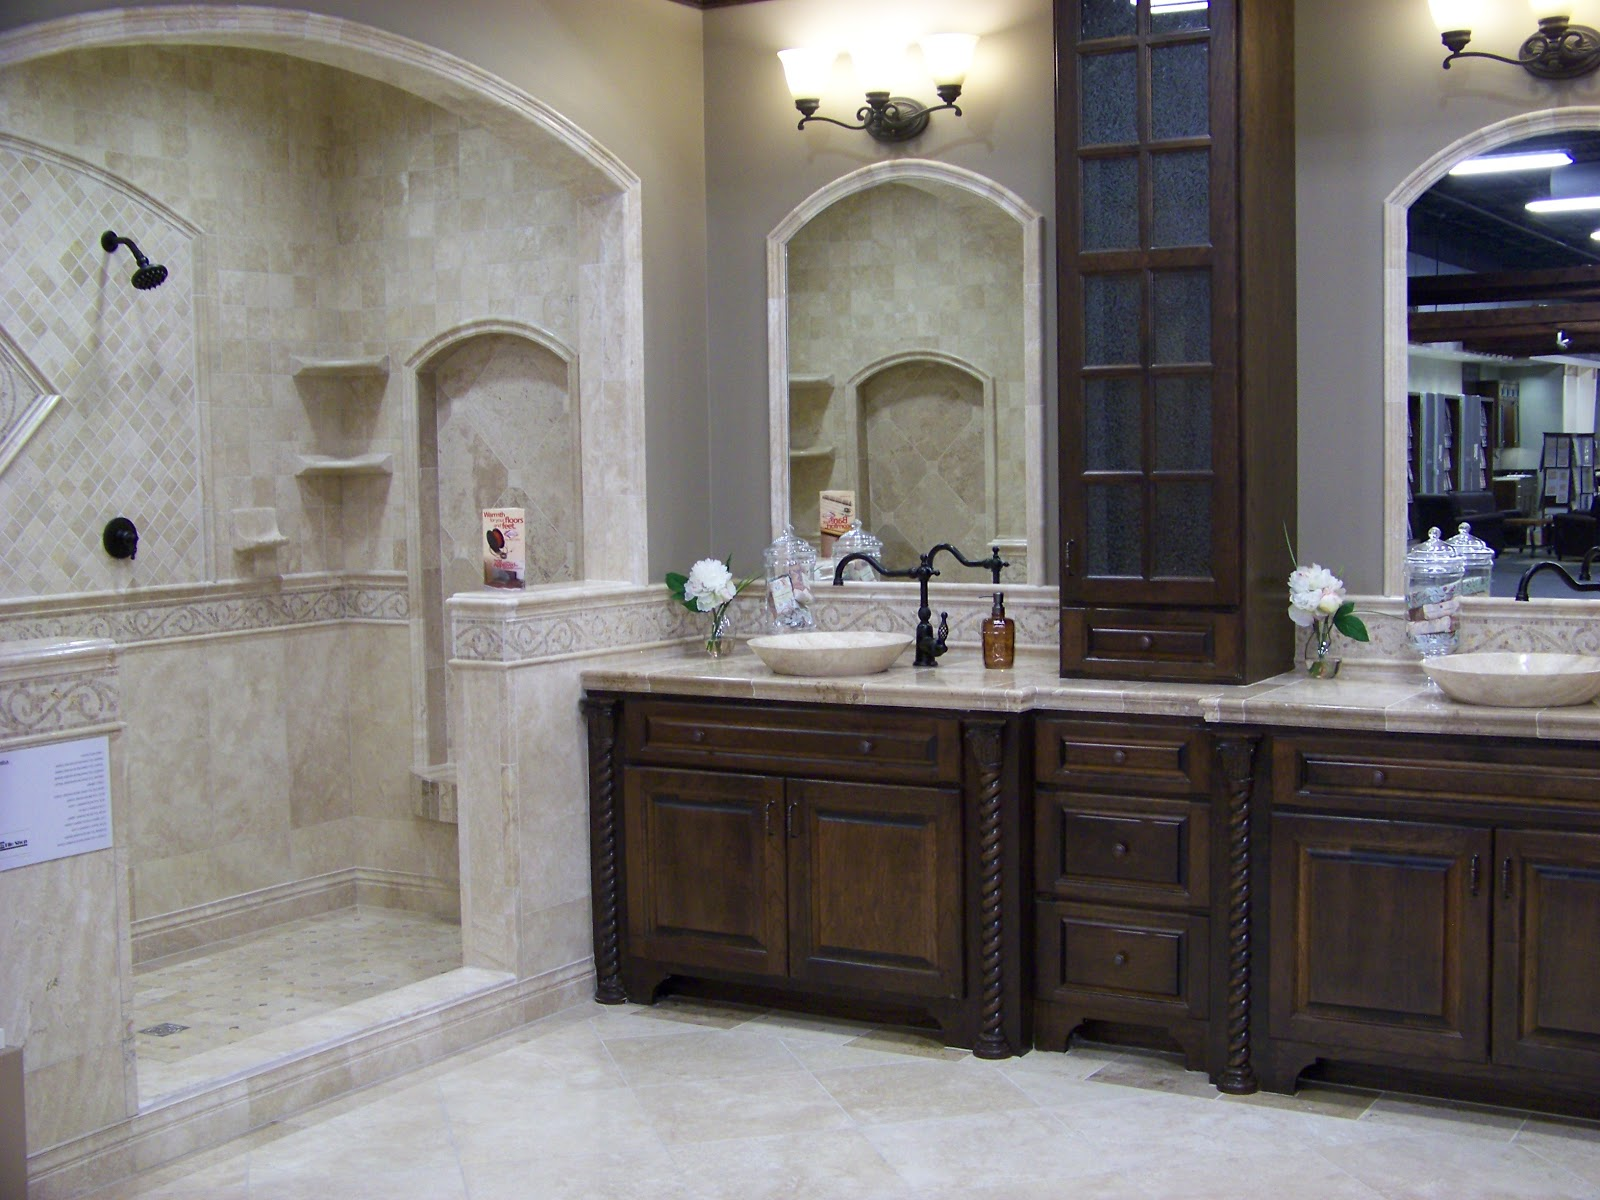 Home decor budgetista bathroom inspiration the tile shop for Old tile bathroom ideas